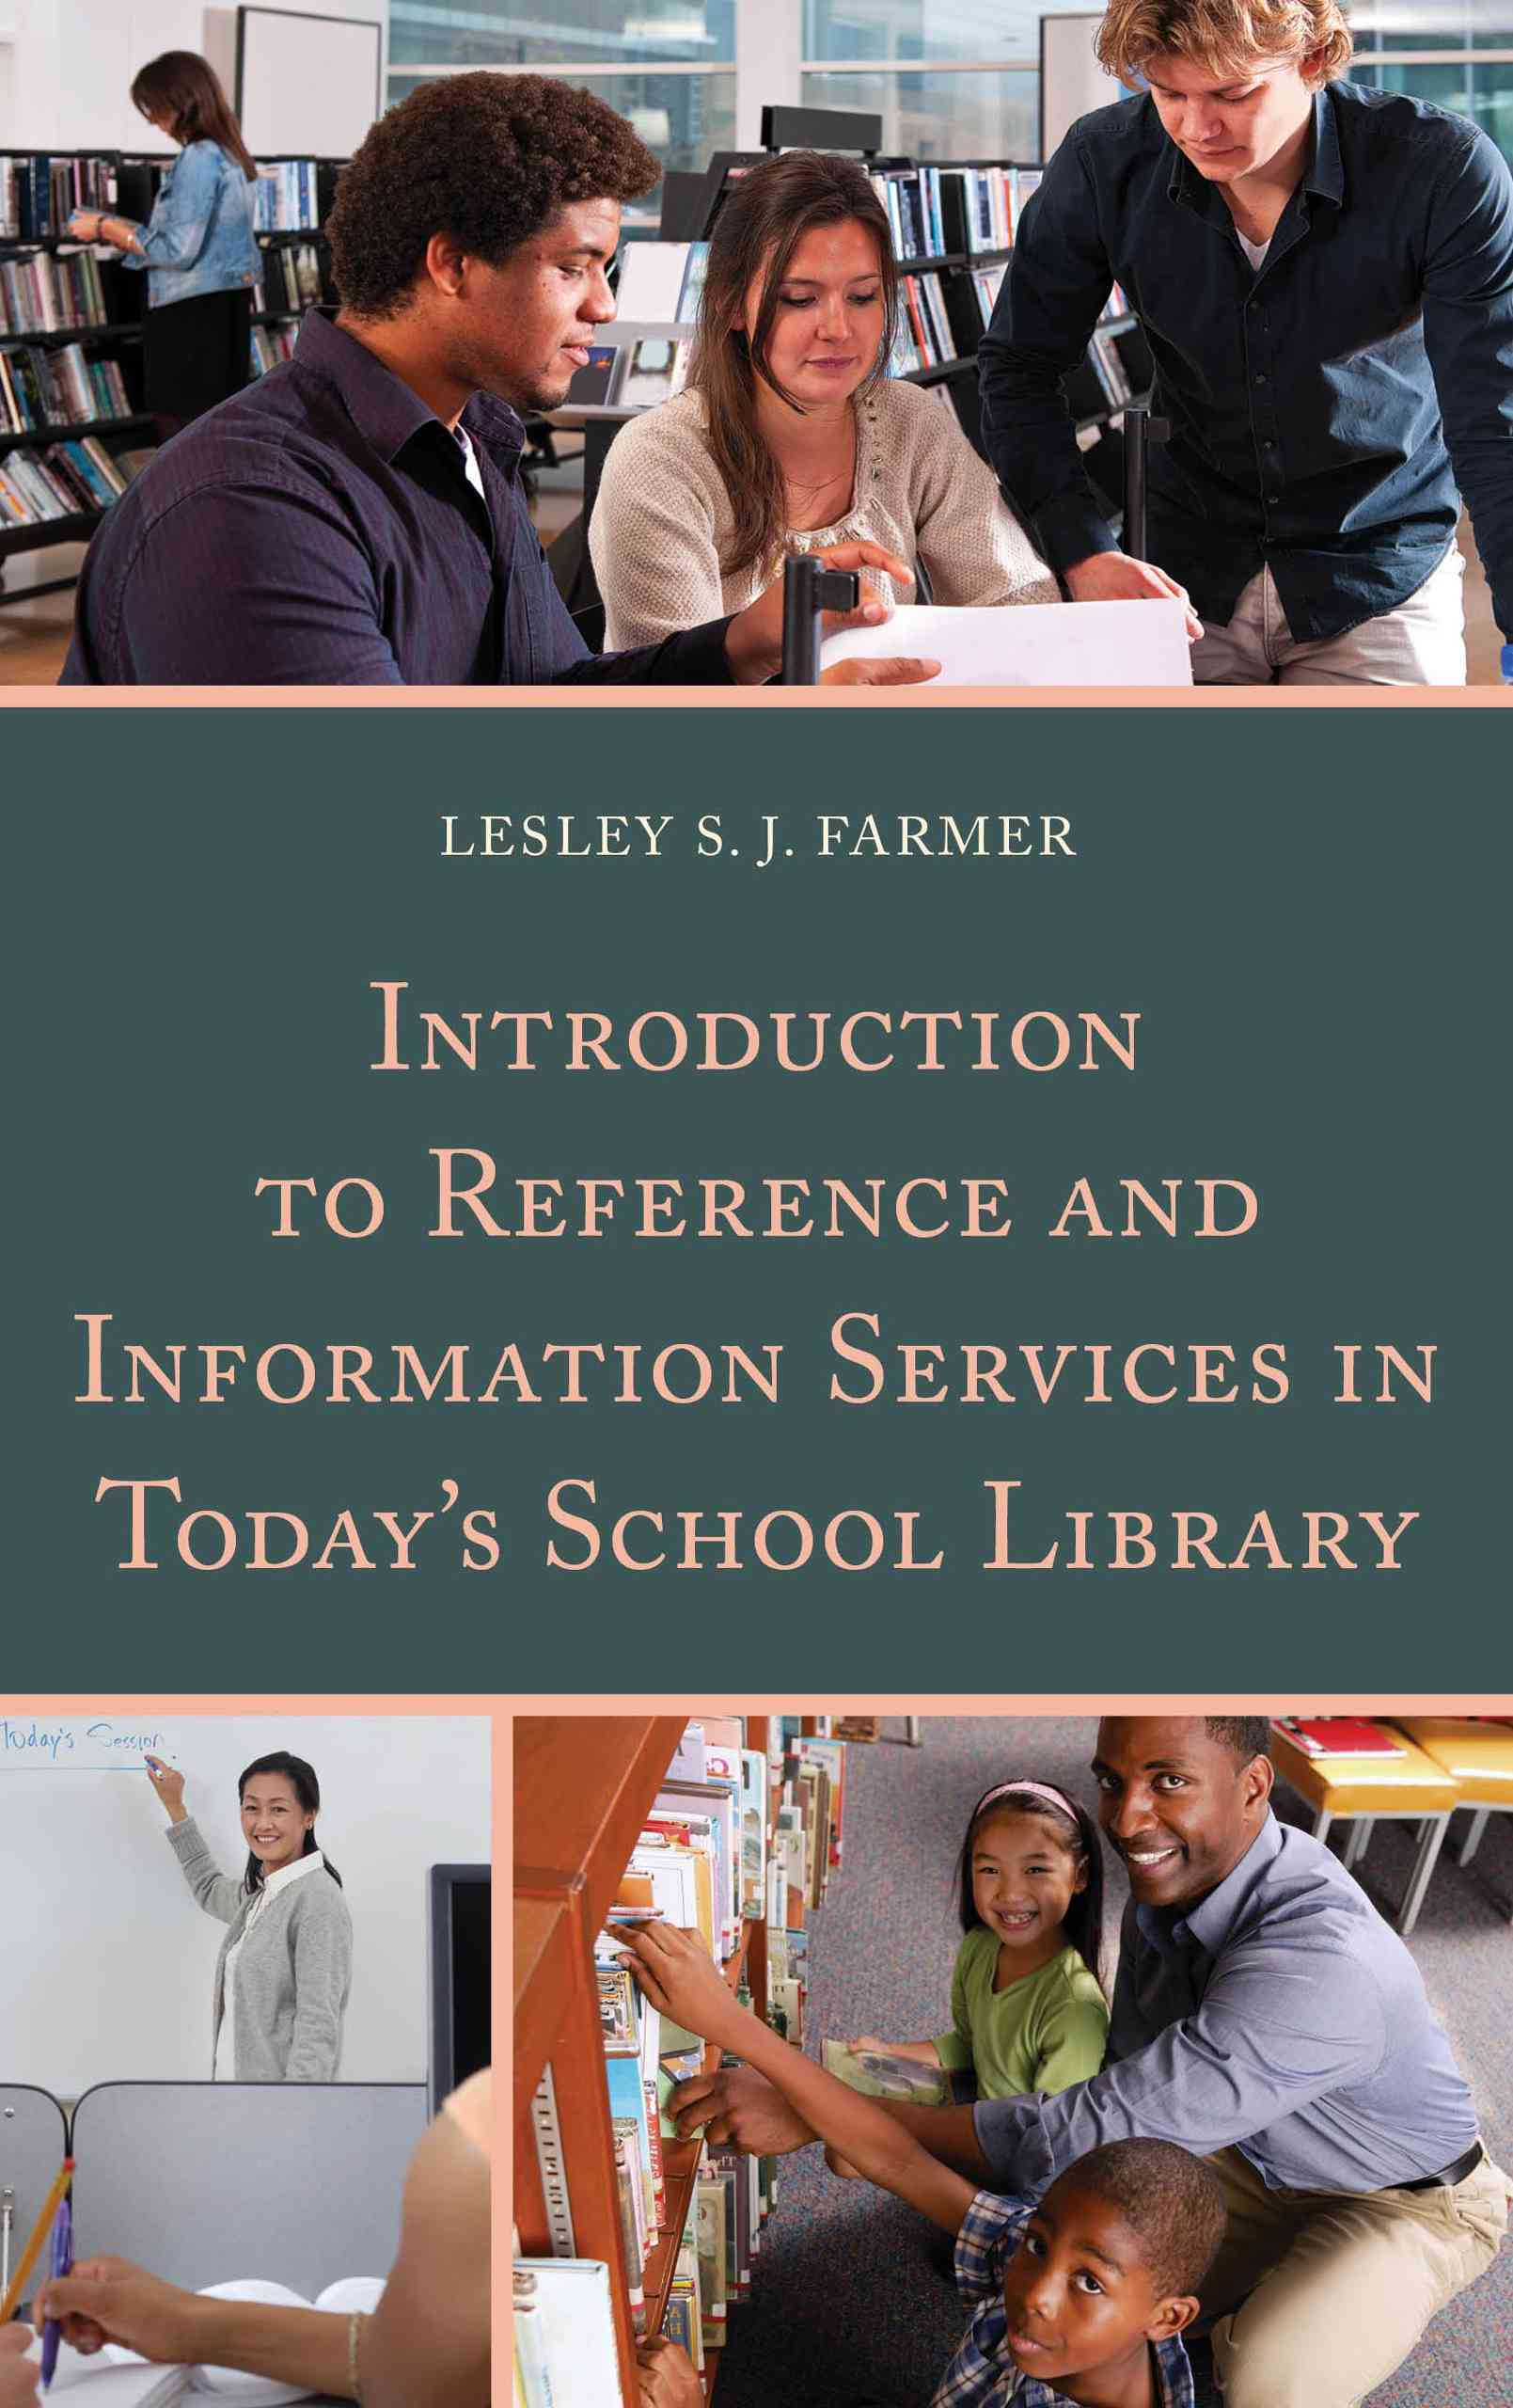 Introduction to Reference and Information Services in Today's School Library By Farmer, Lesley S. J.